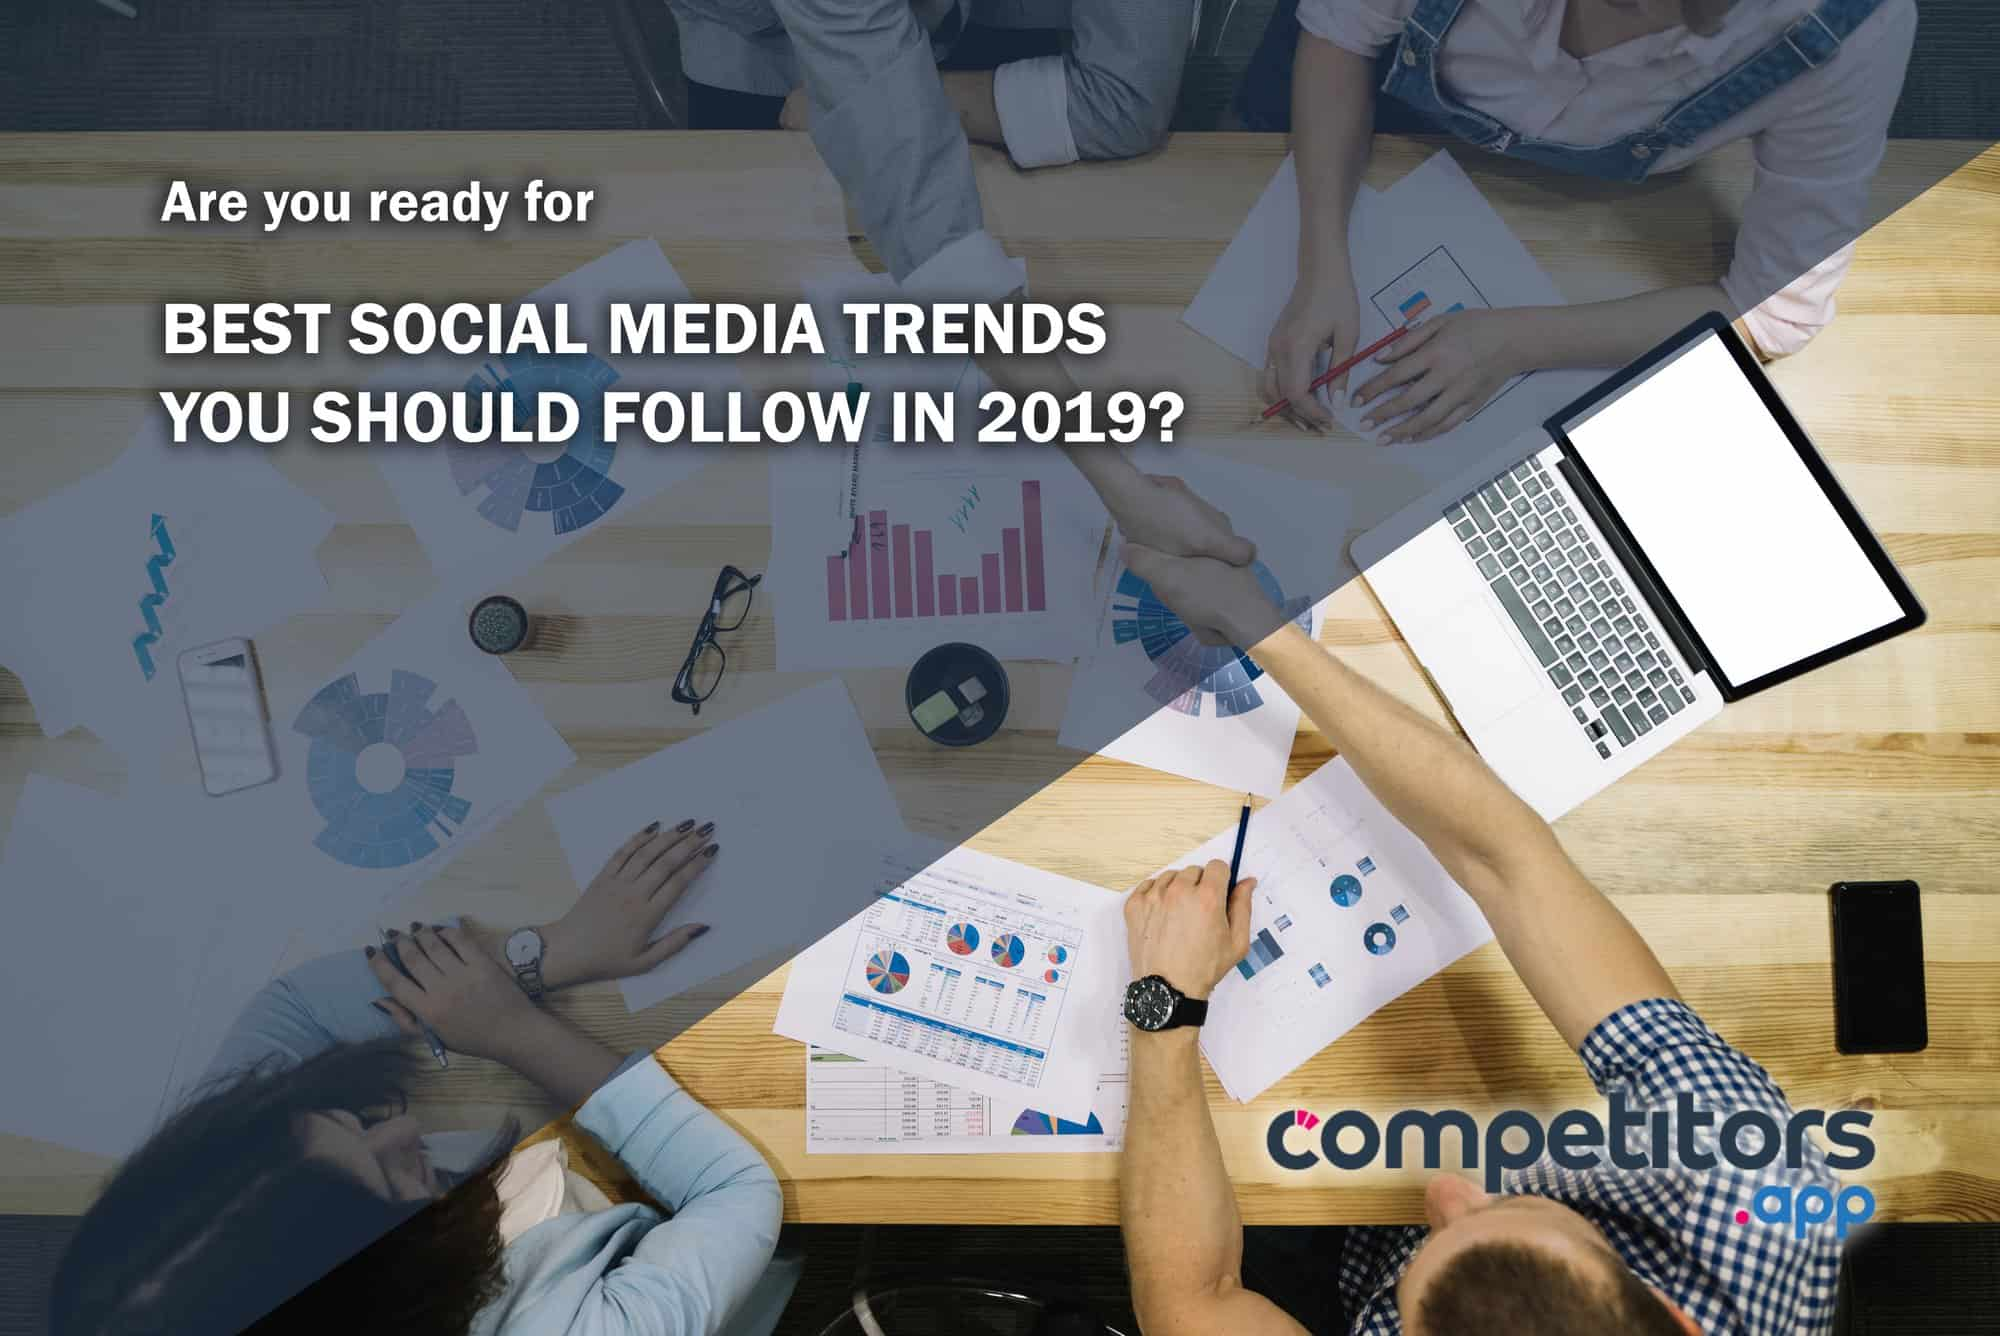 Best Social Media Trends to follow in 2019